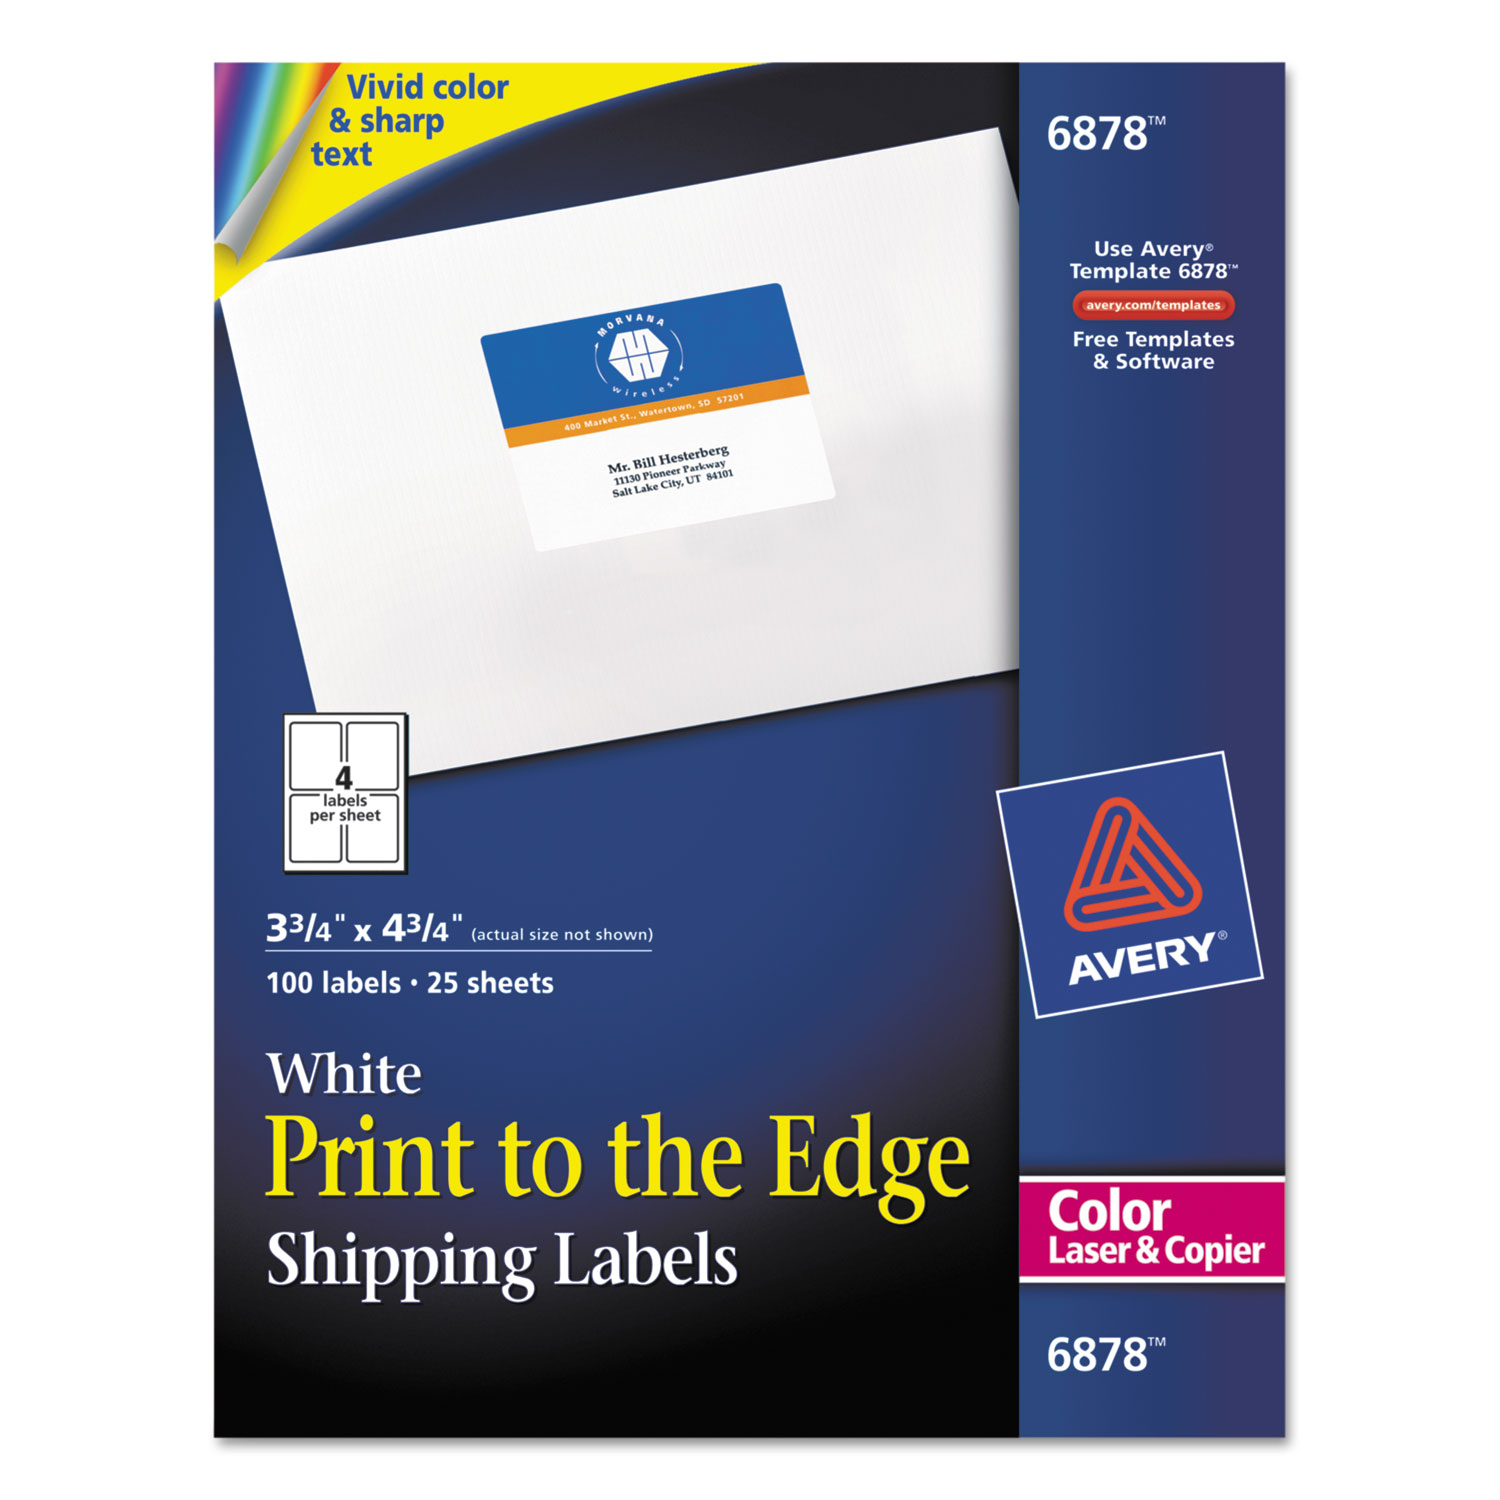 Vibrant ColorPrinting Shipping Labels By Avery AVE - Copier labels template